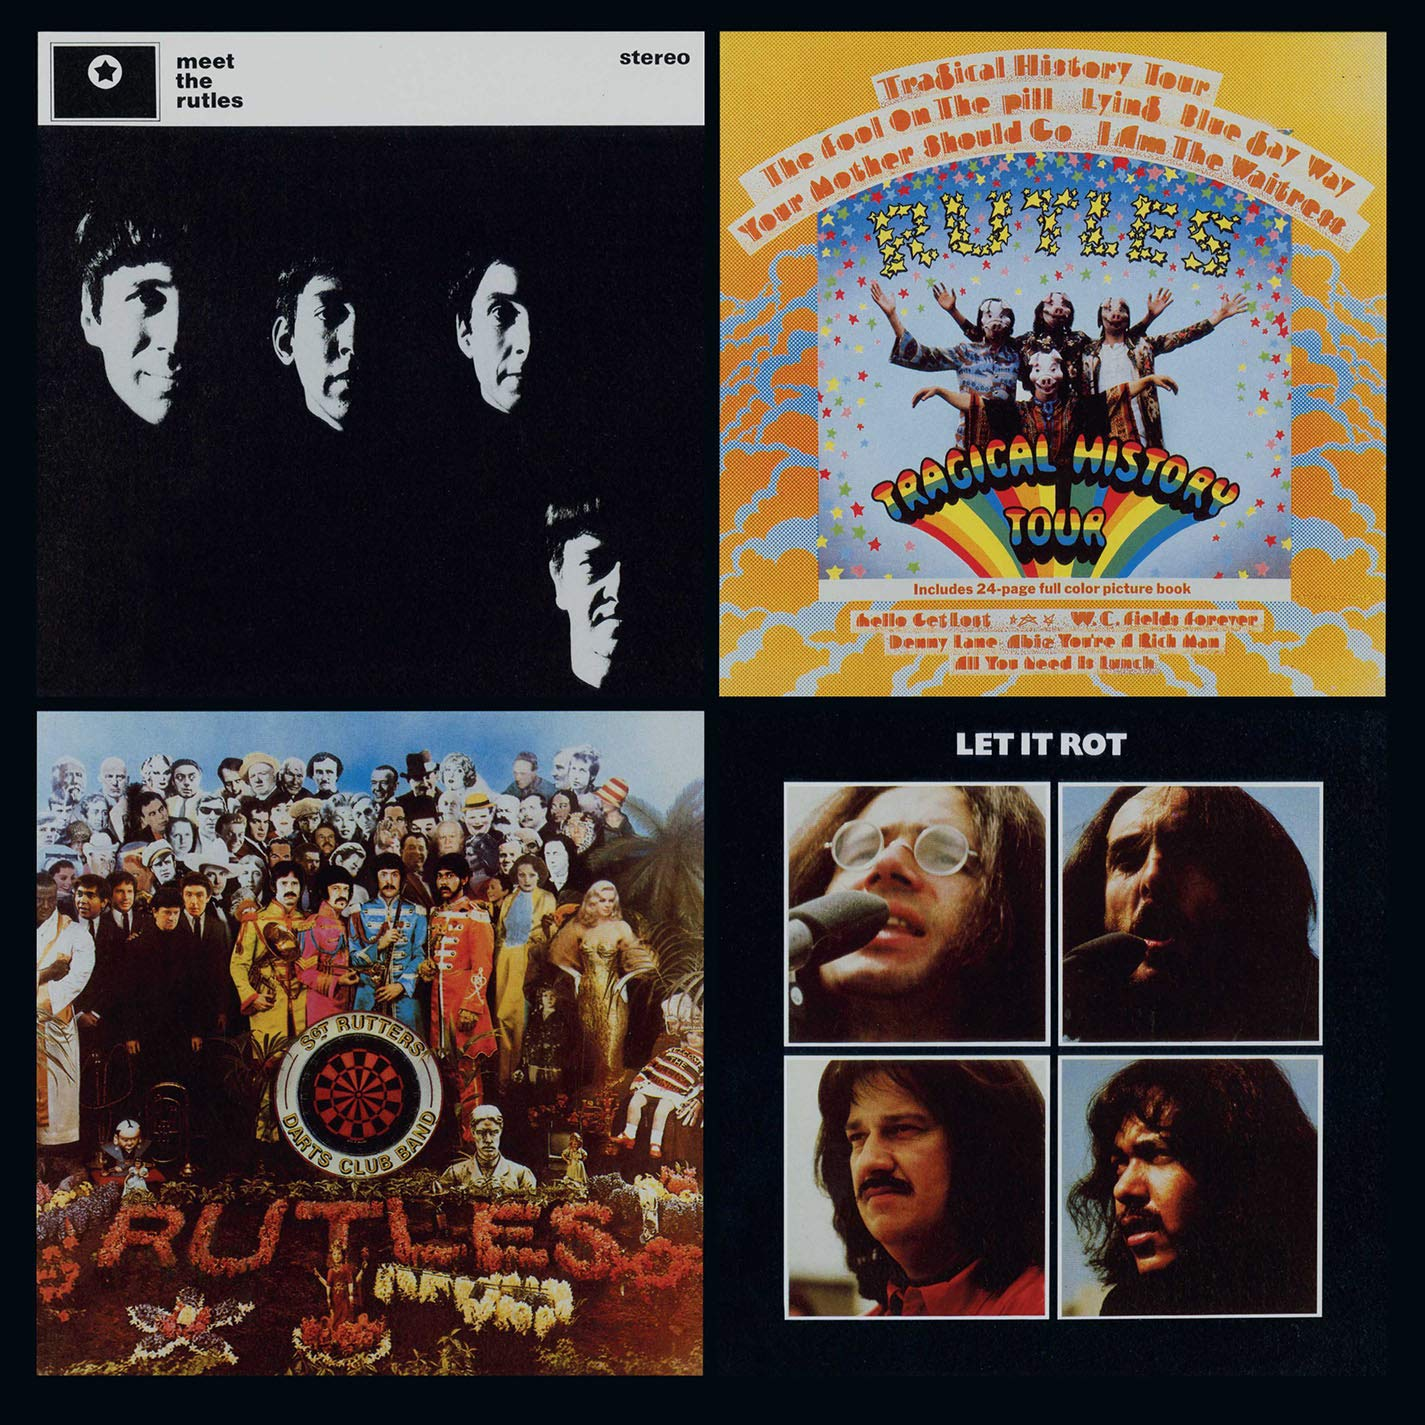 File:The Rutles (album).JPG